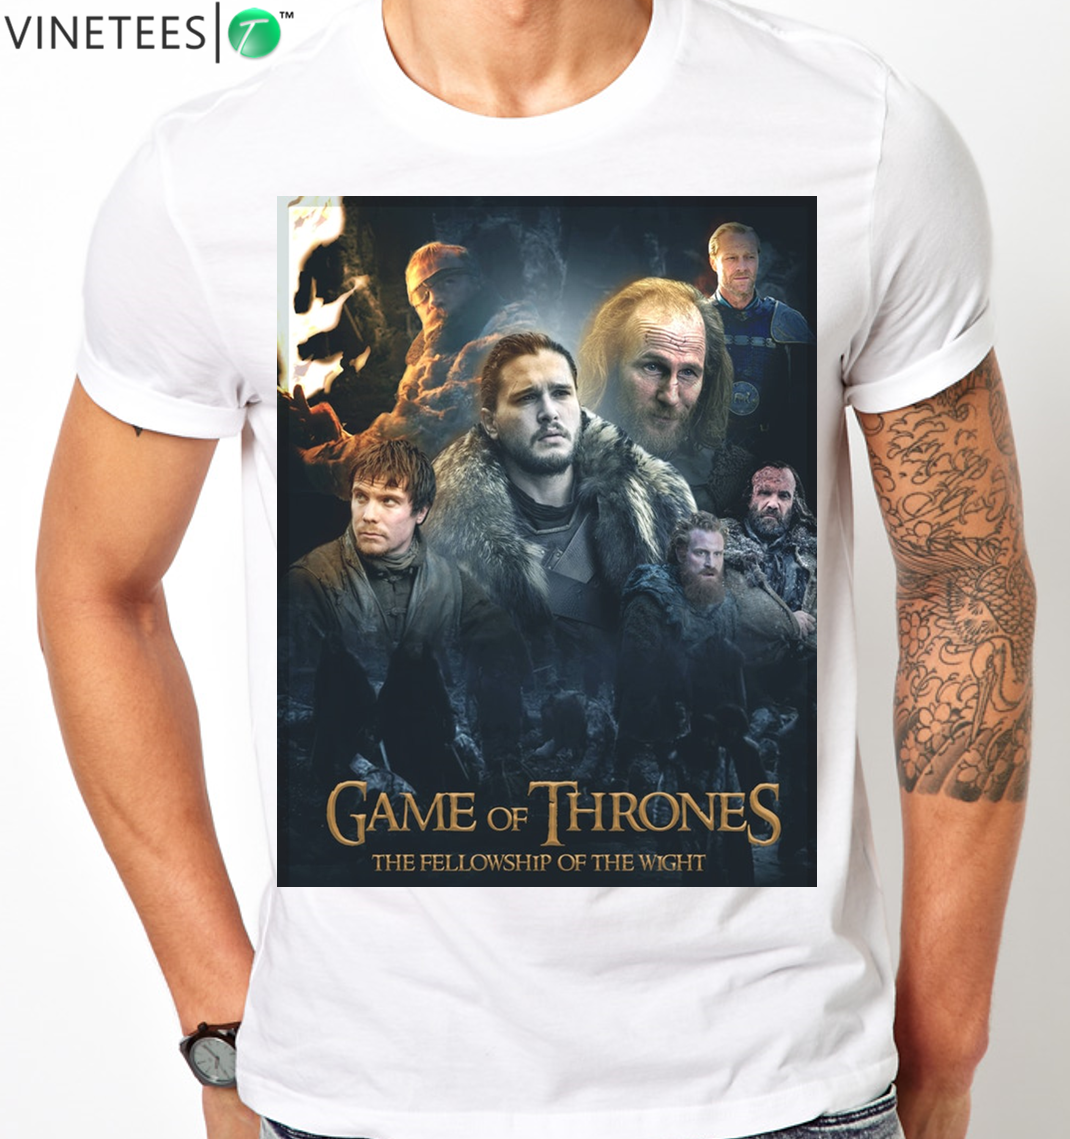 GAME OF THRONES LORD OF THE RINGS GOT LOTR SEASON 7 JON SNOW ANY SIZE T SHIRT